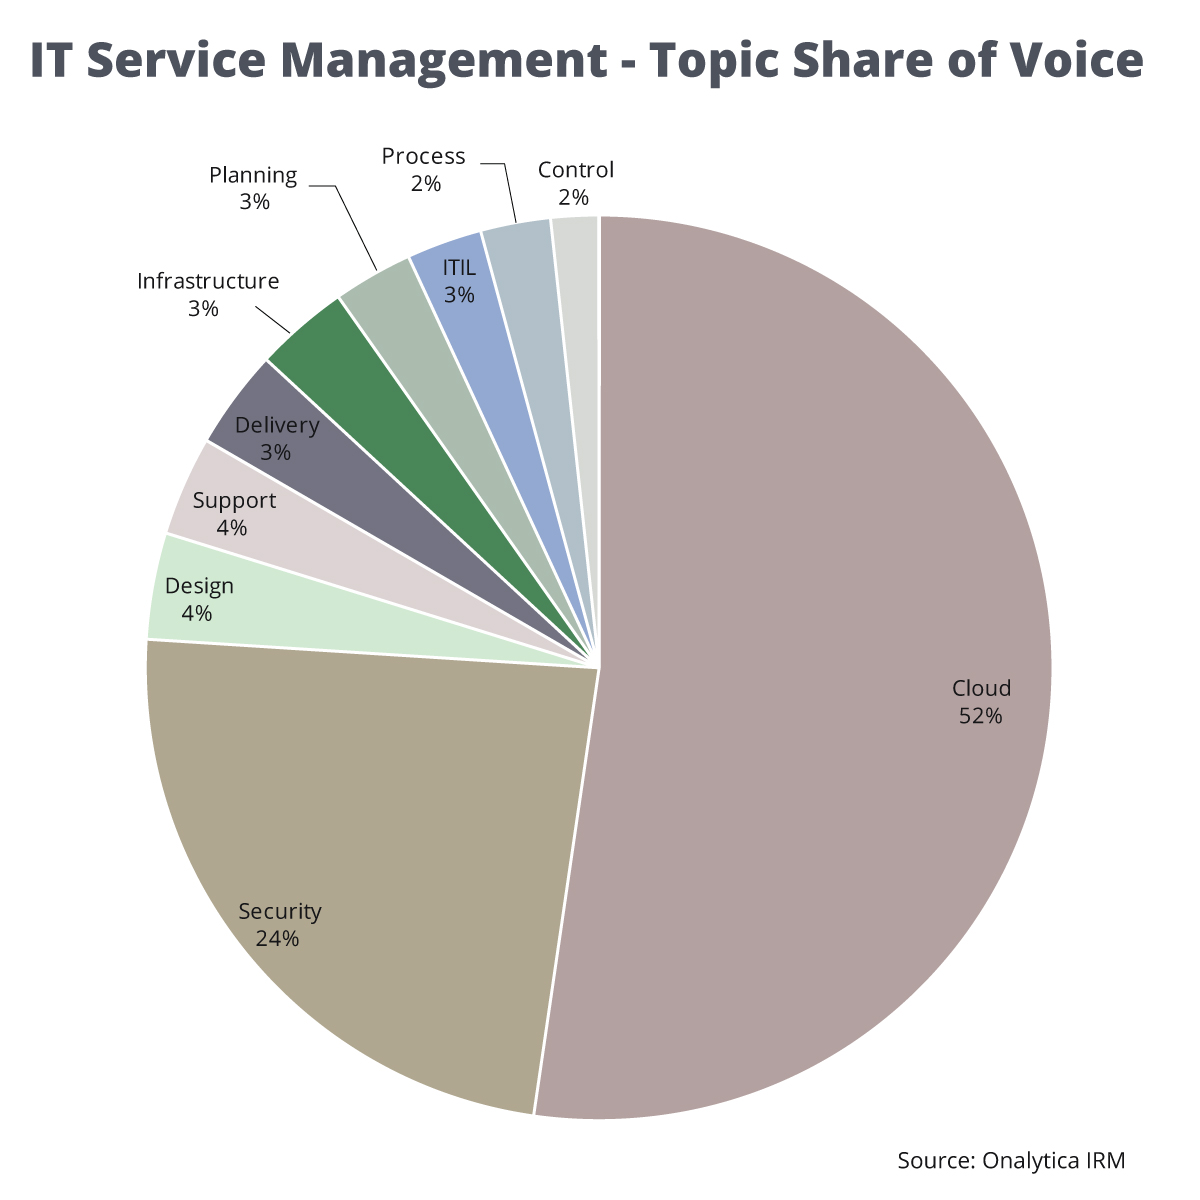 Onalytica - IT Service Management Top 100 Influencers and Brands Topic Share of Voice